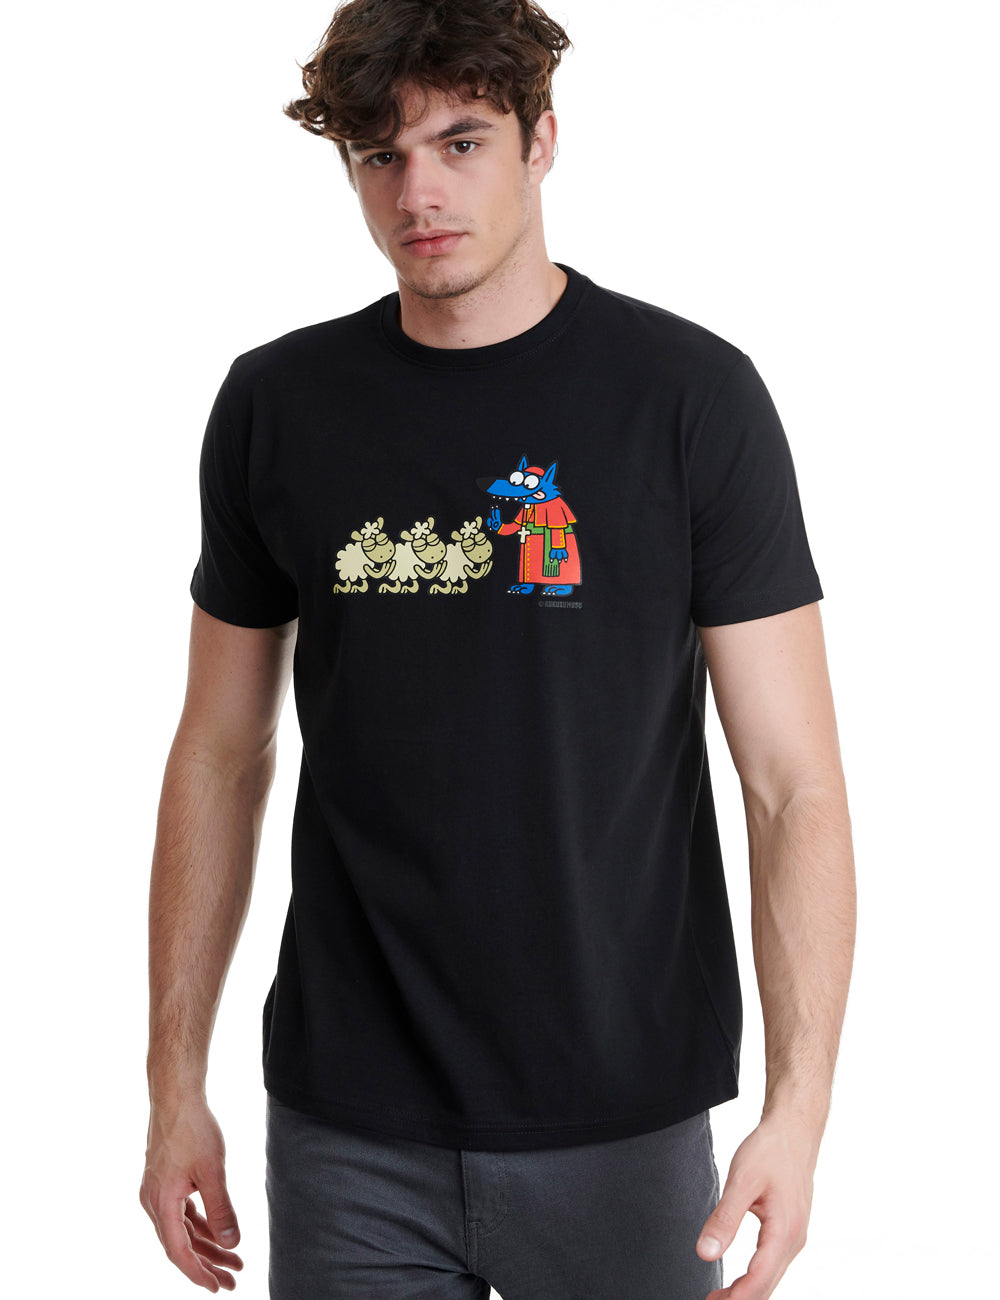 Errezu Mens T-shirt